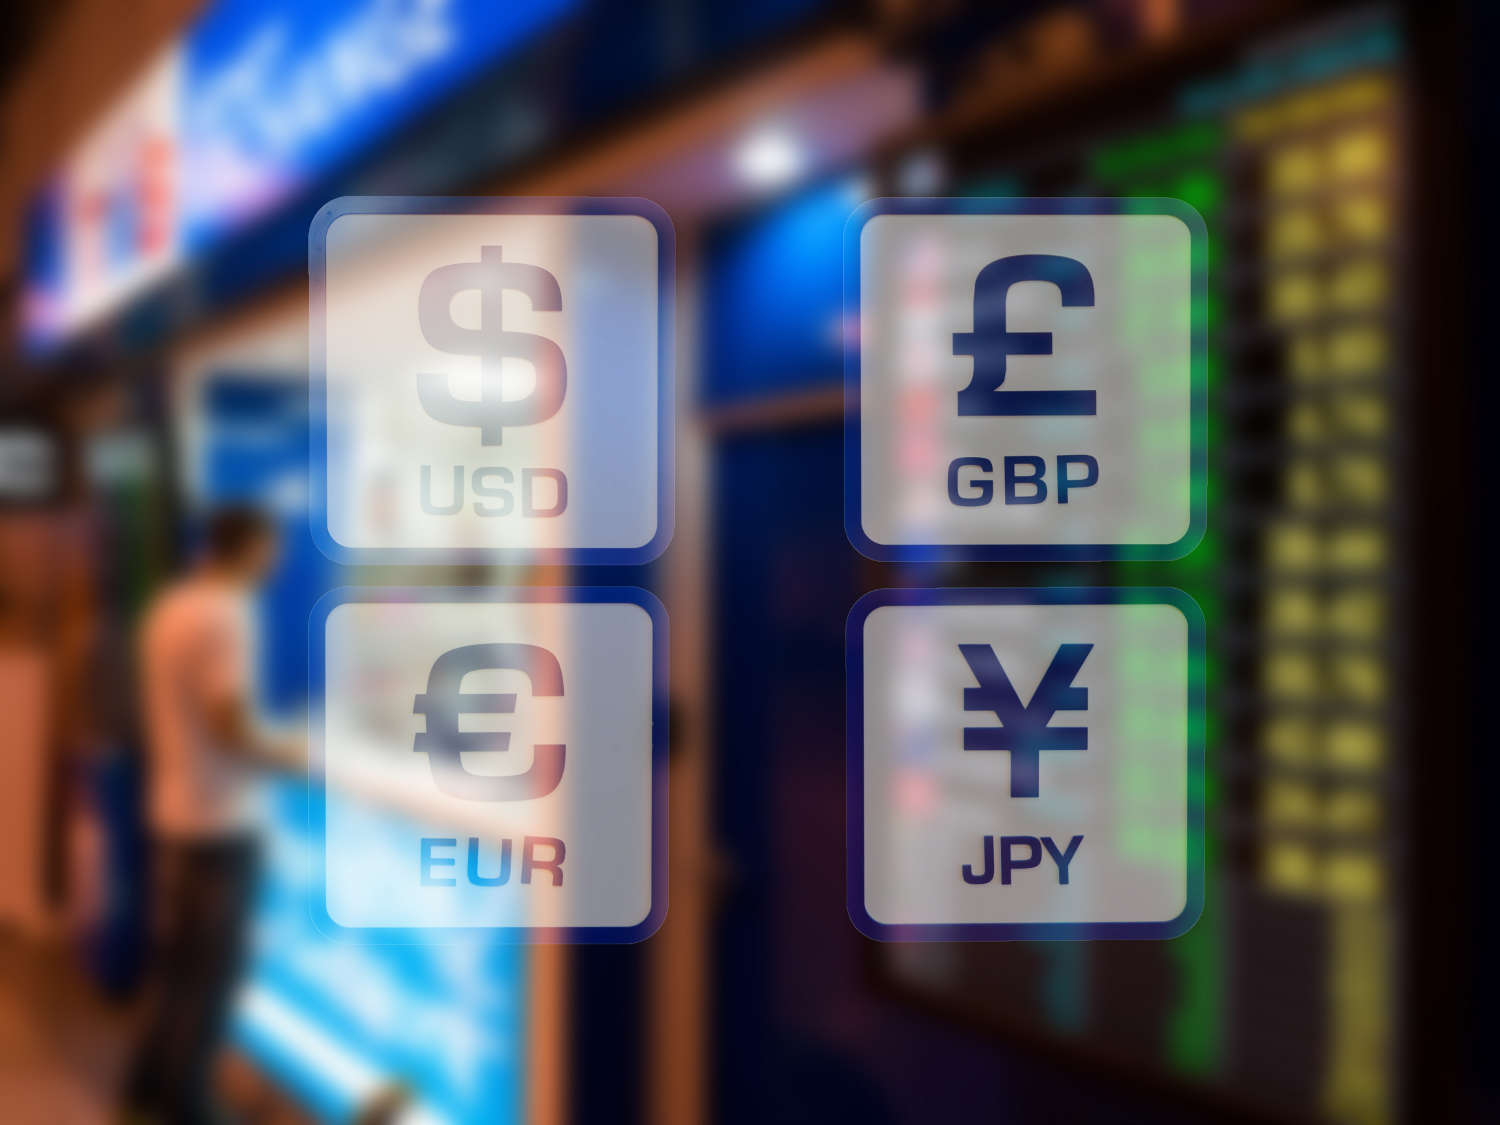 Scb forex rates